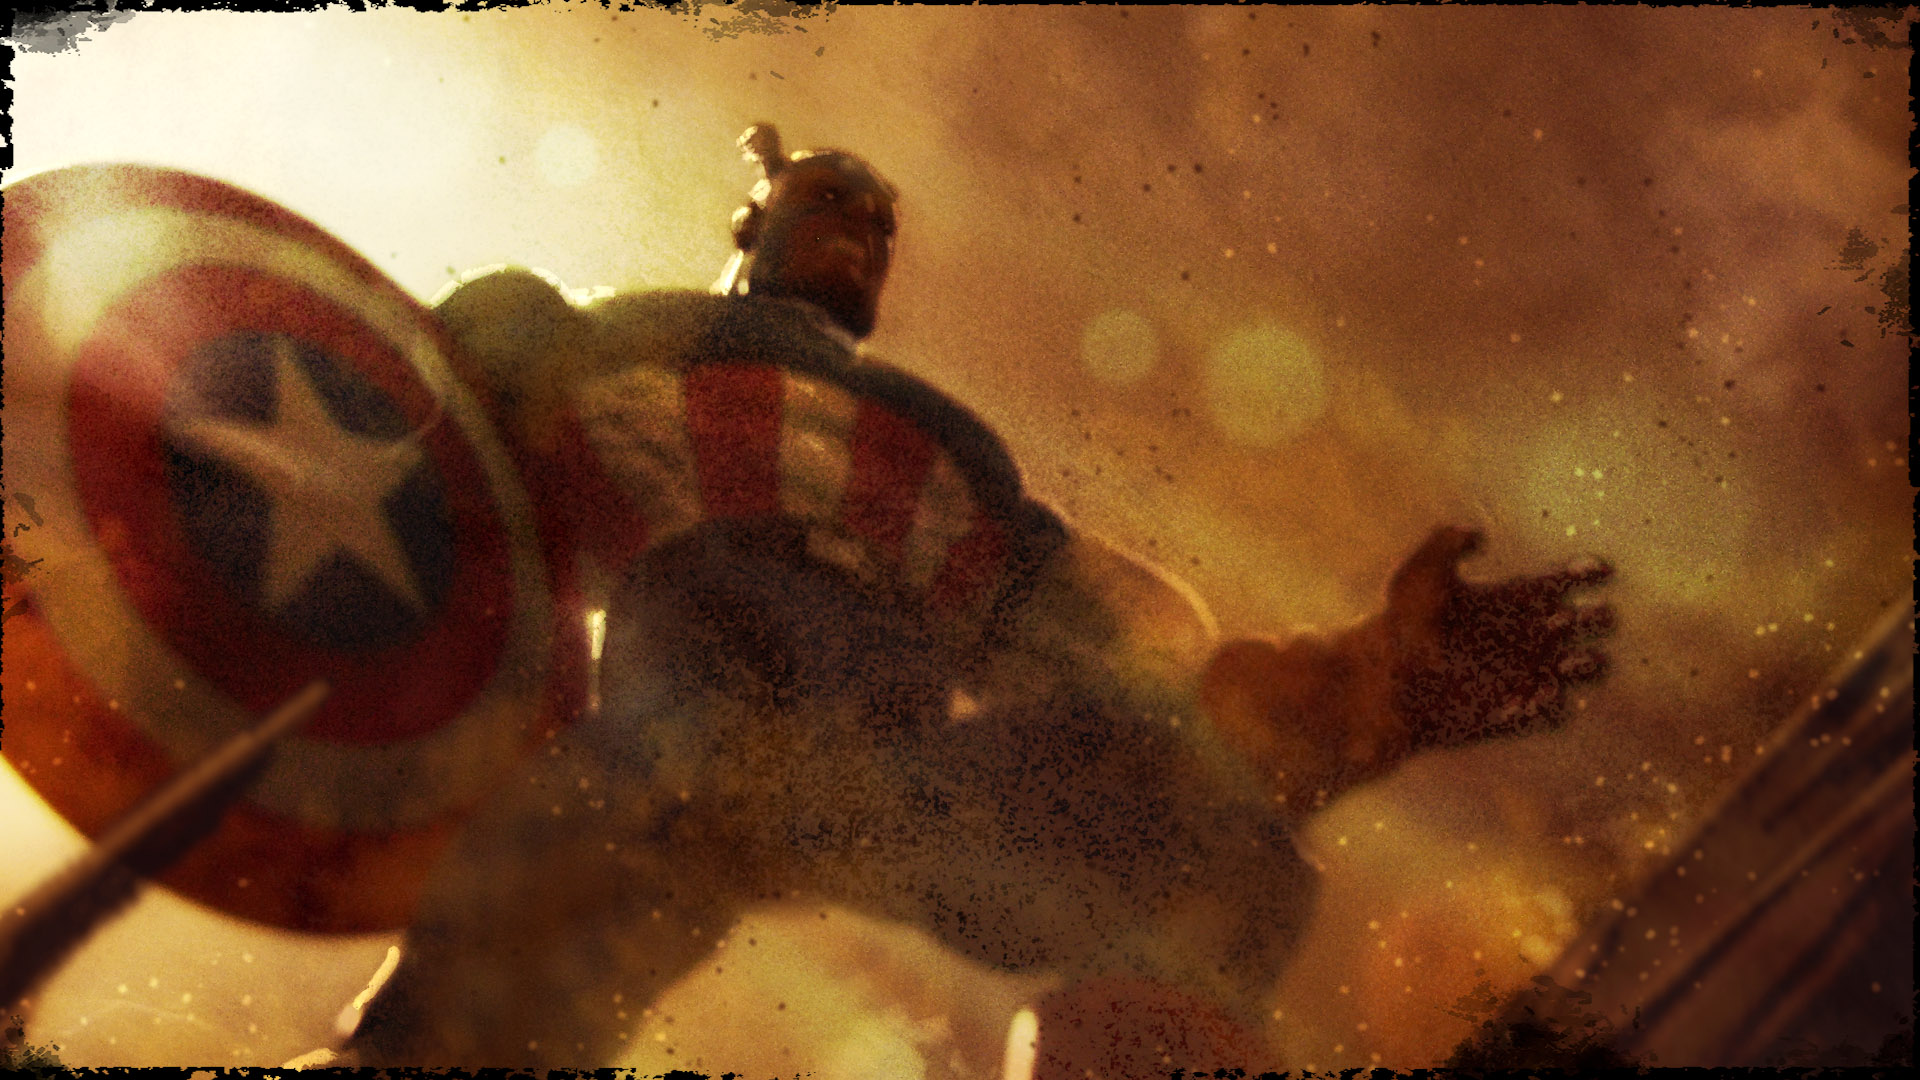 captain america: wallpaper, wallpapers, fond ecran, fond ecrans